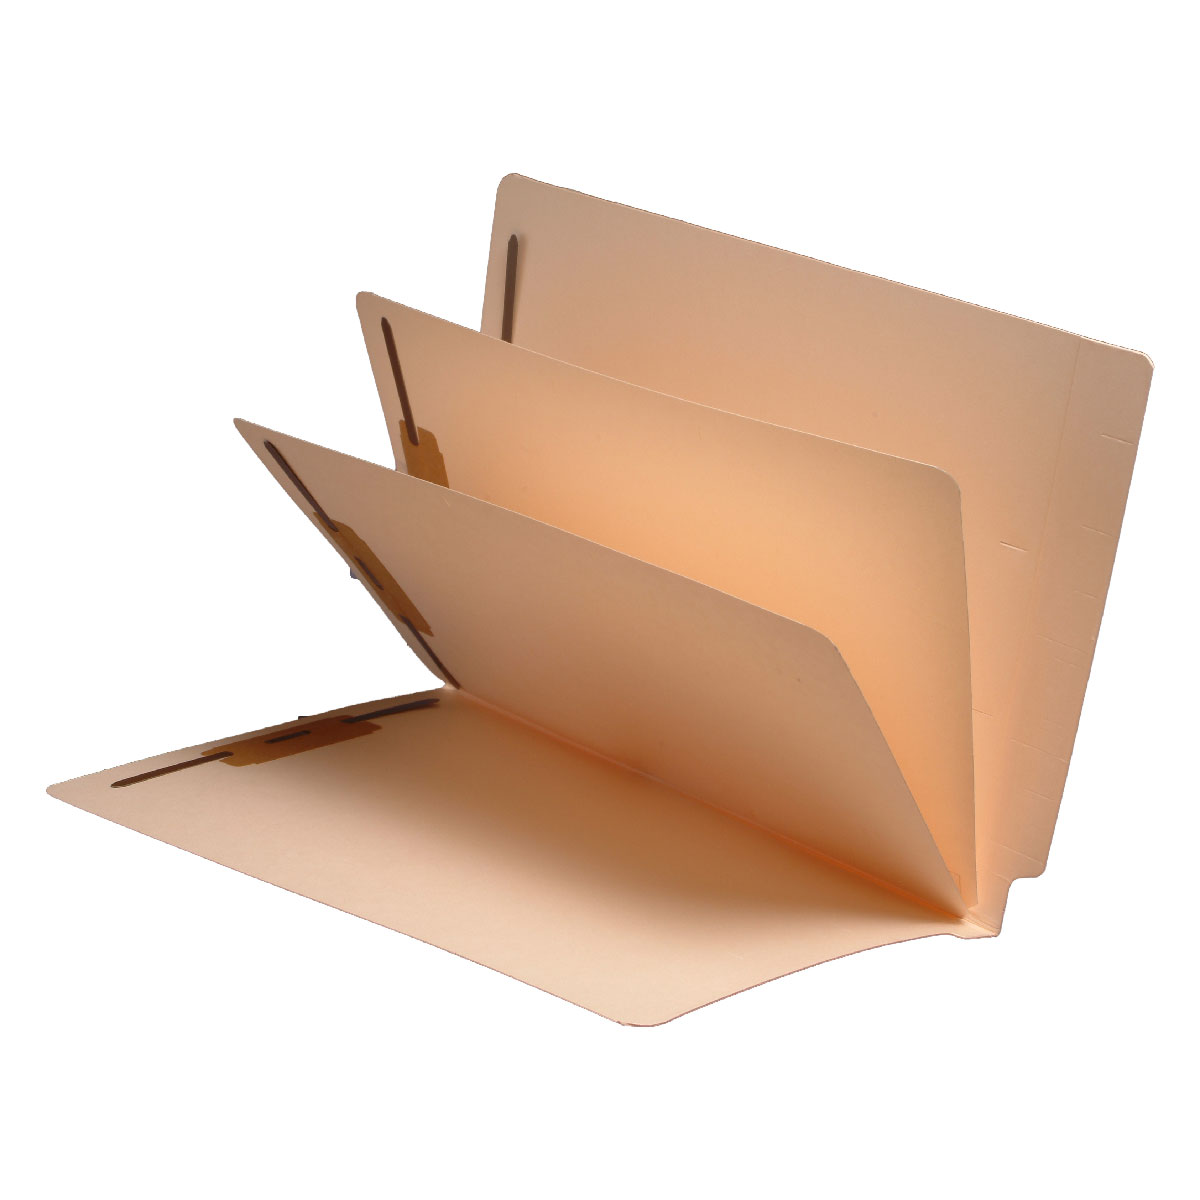 S-9303 - 11 Pt. Manila Folders, Full Cut End Tab, Letter Size, 2 Dividers Installed (Box of 25)